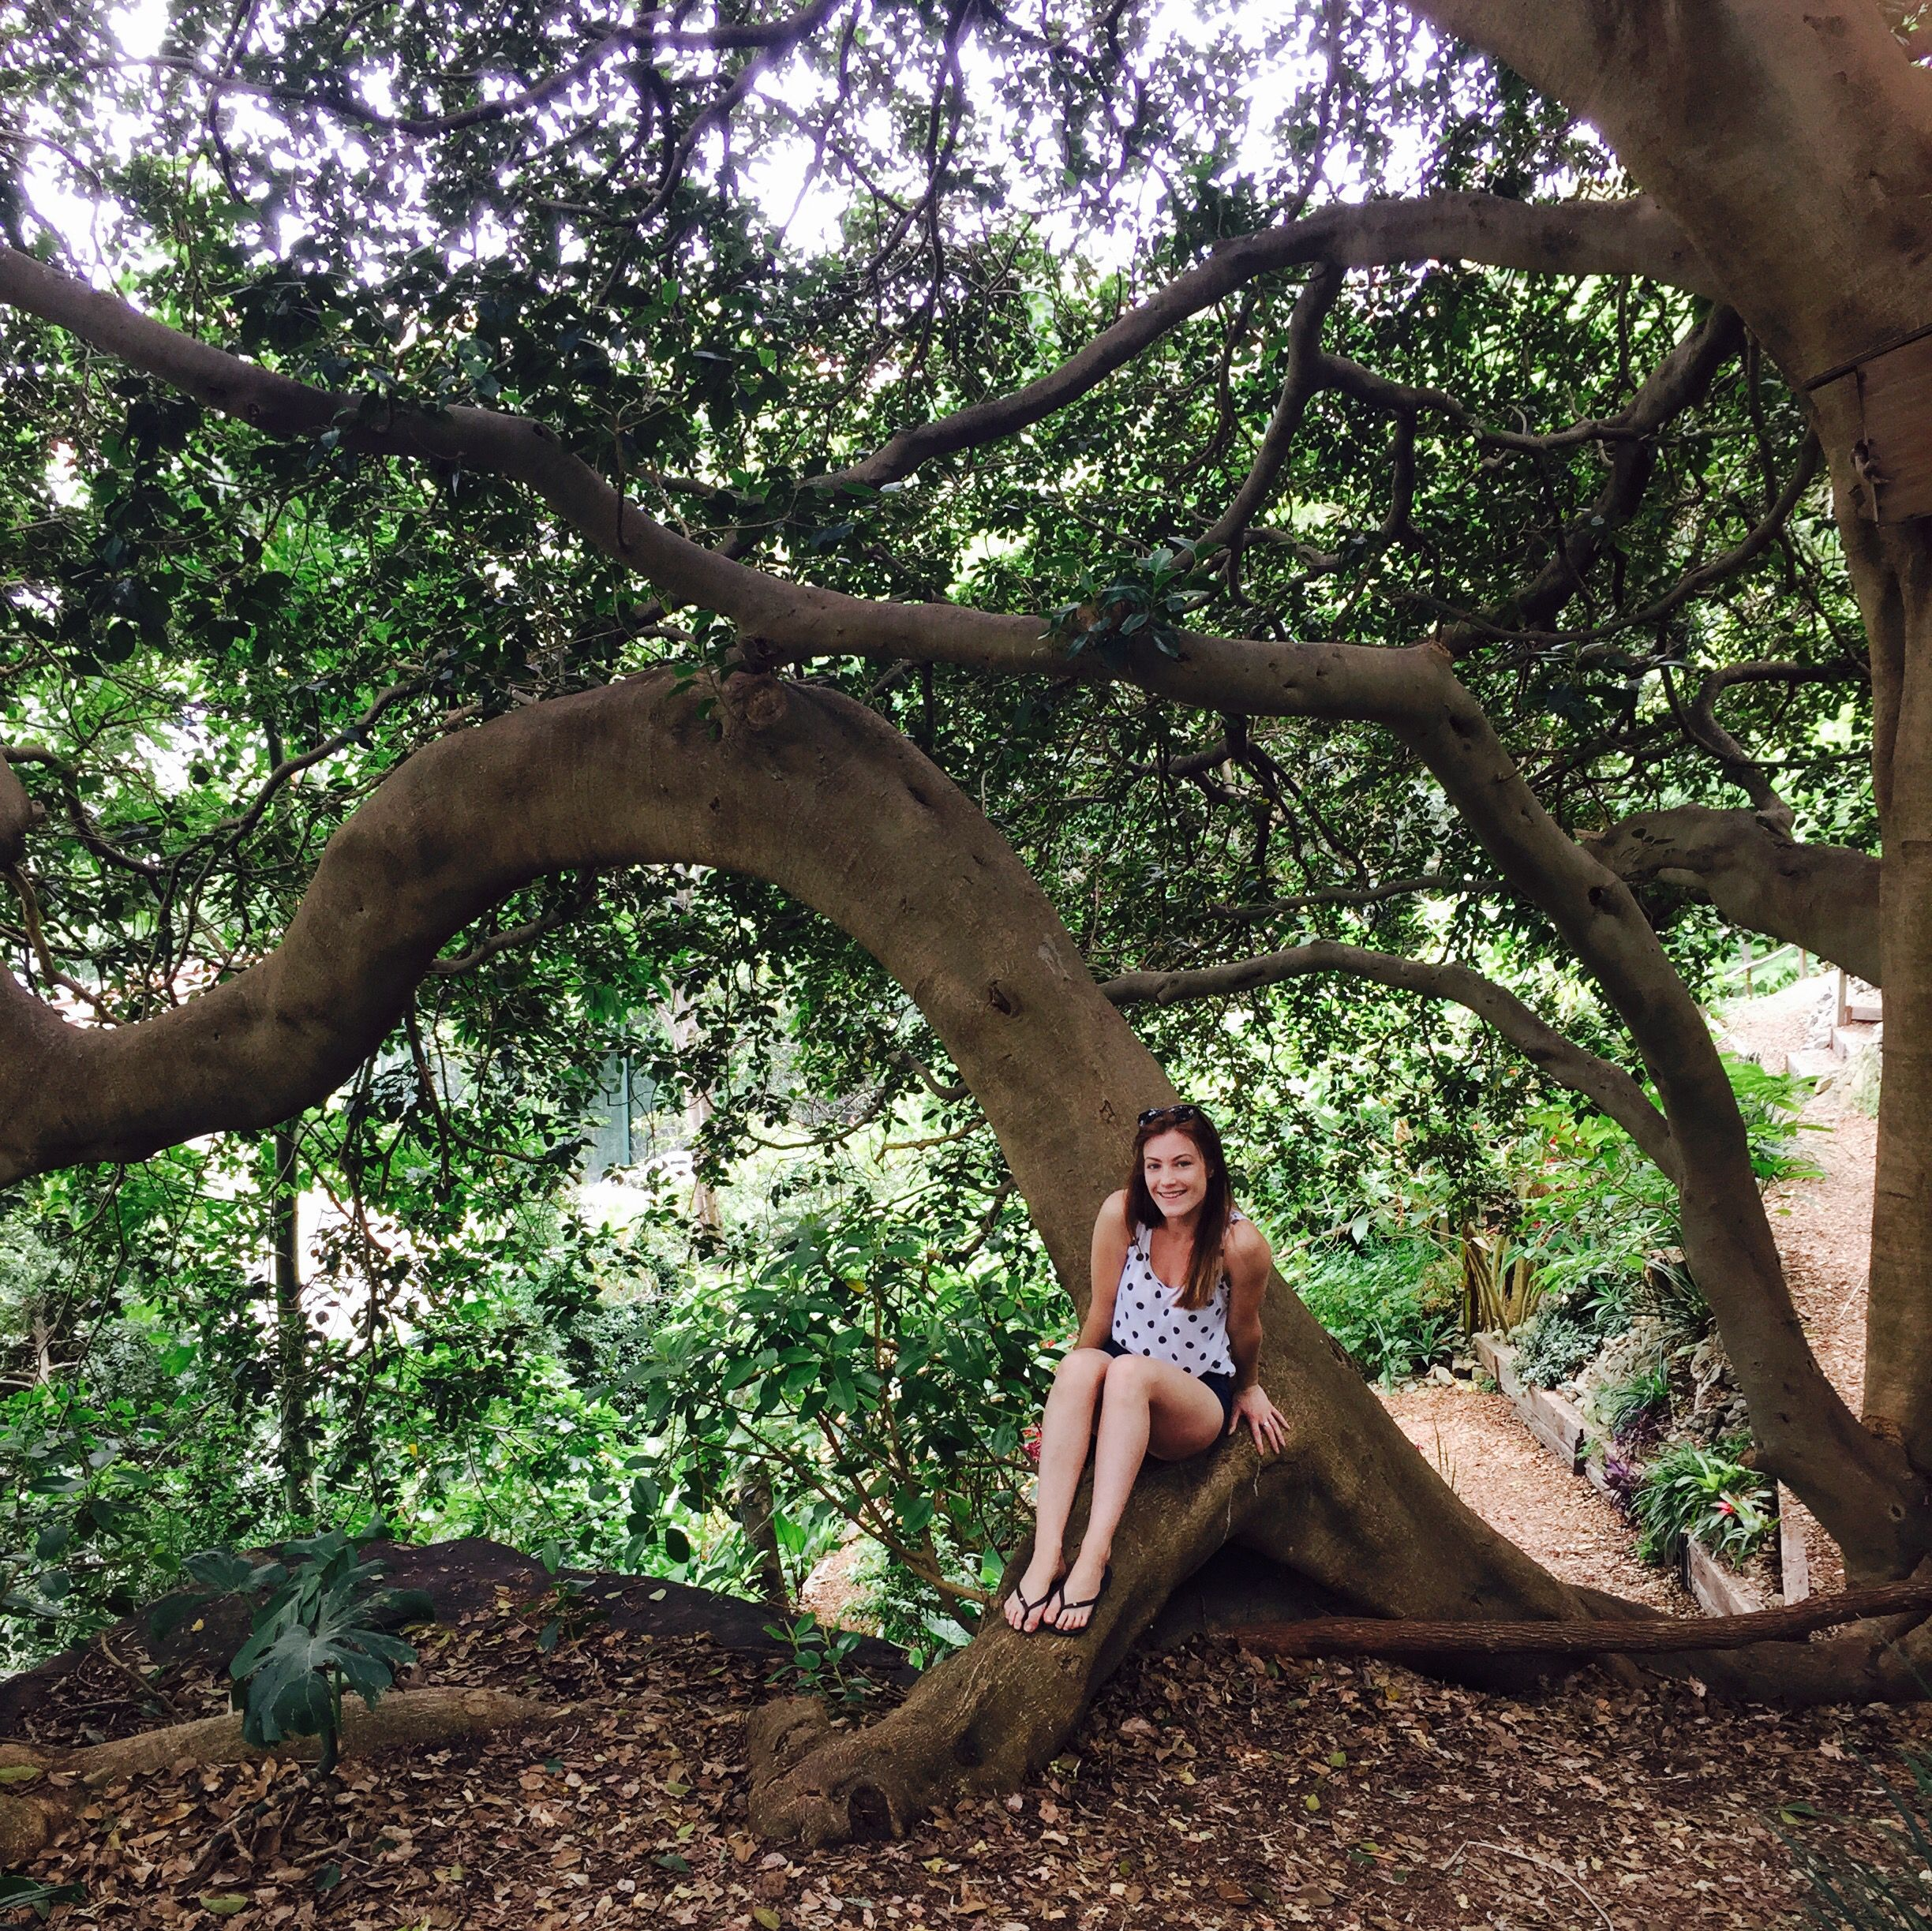 Sydney bush walk - whitely garden - lavender bay - Australian Morton Bay Fig tree